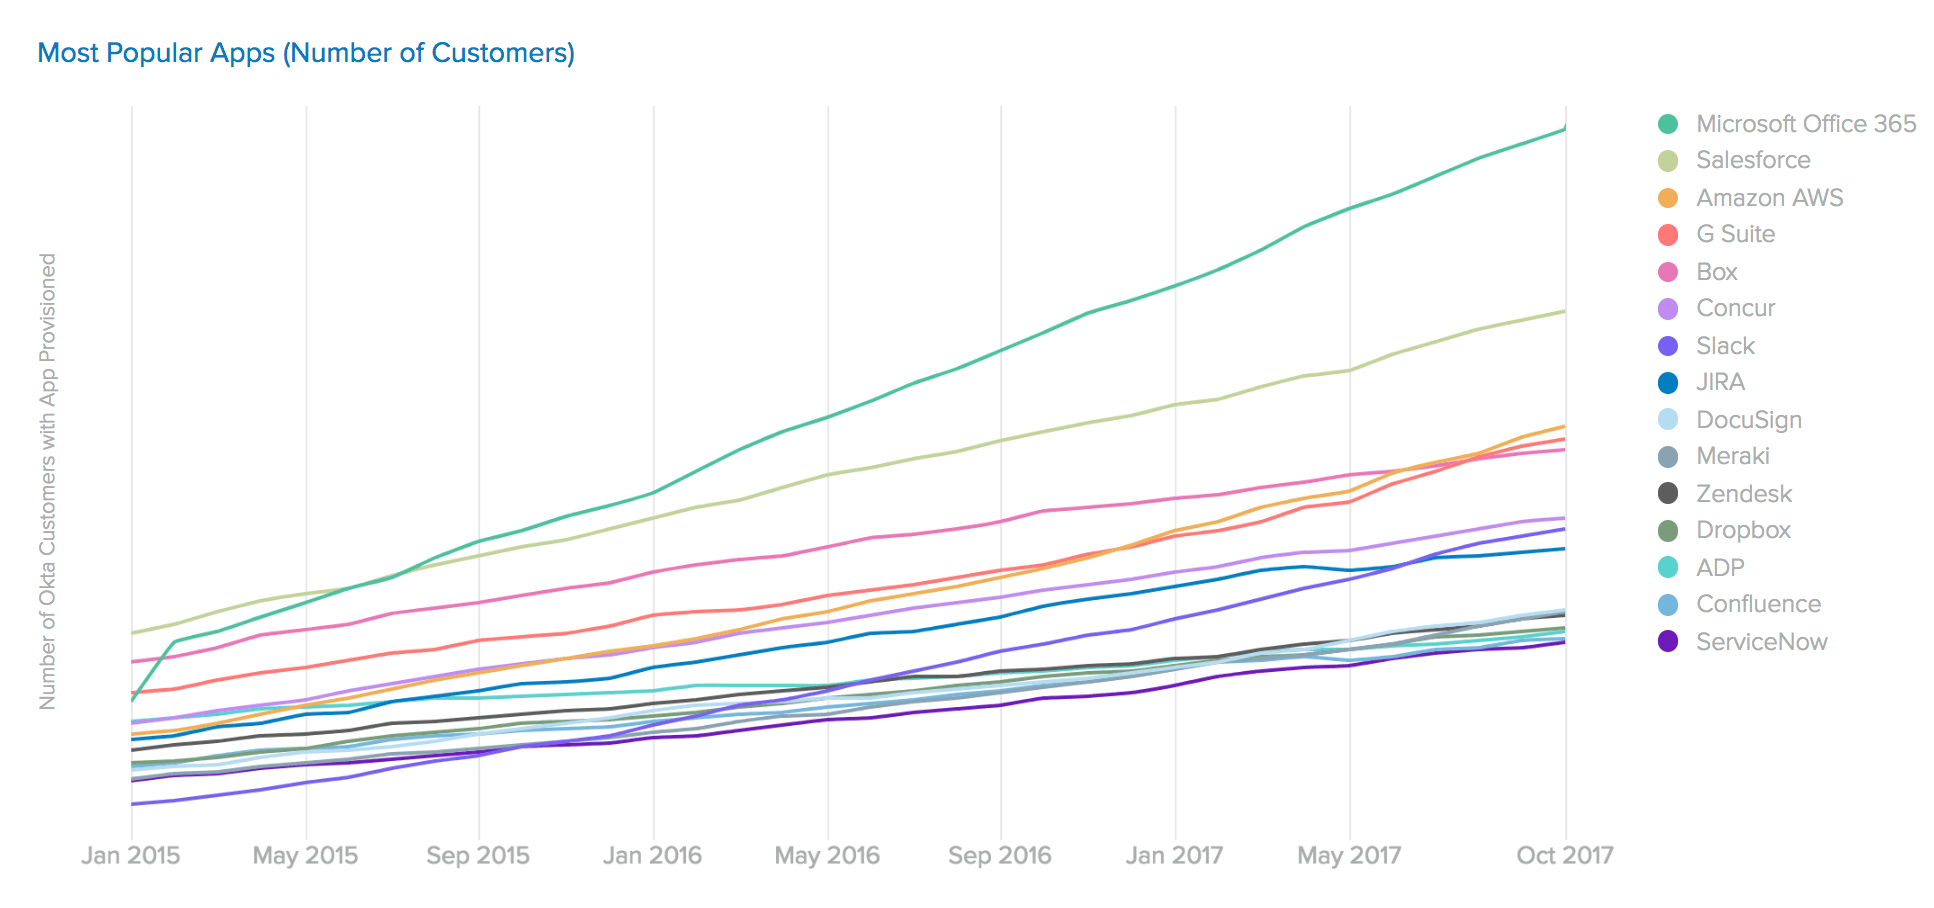 Most Popular Apps Number of Customers